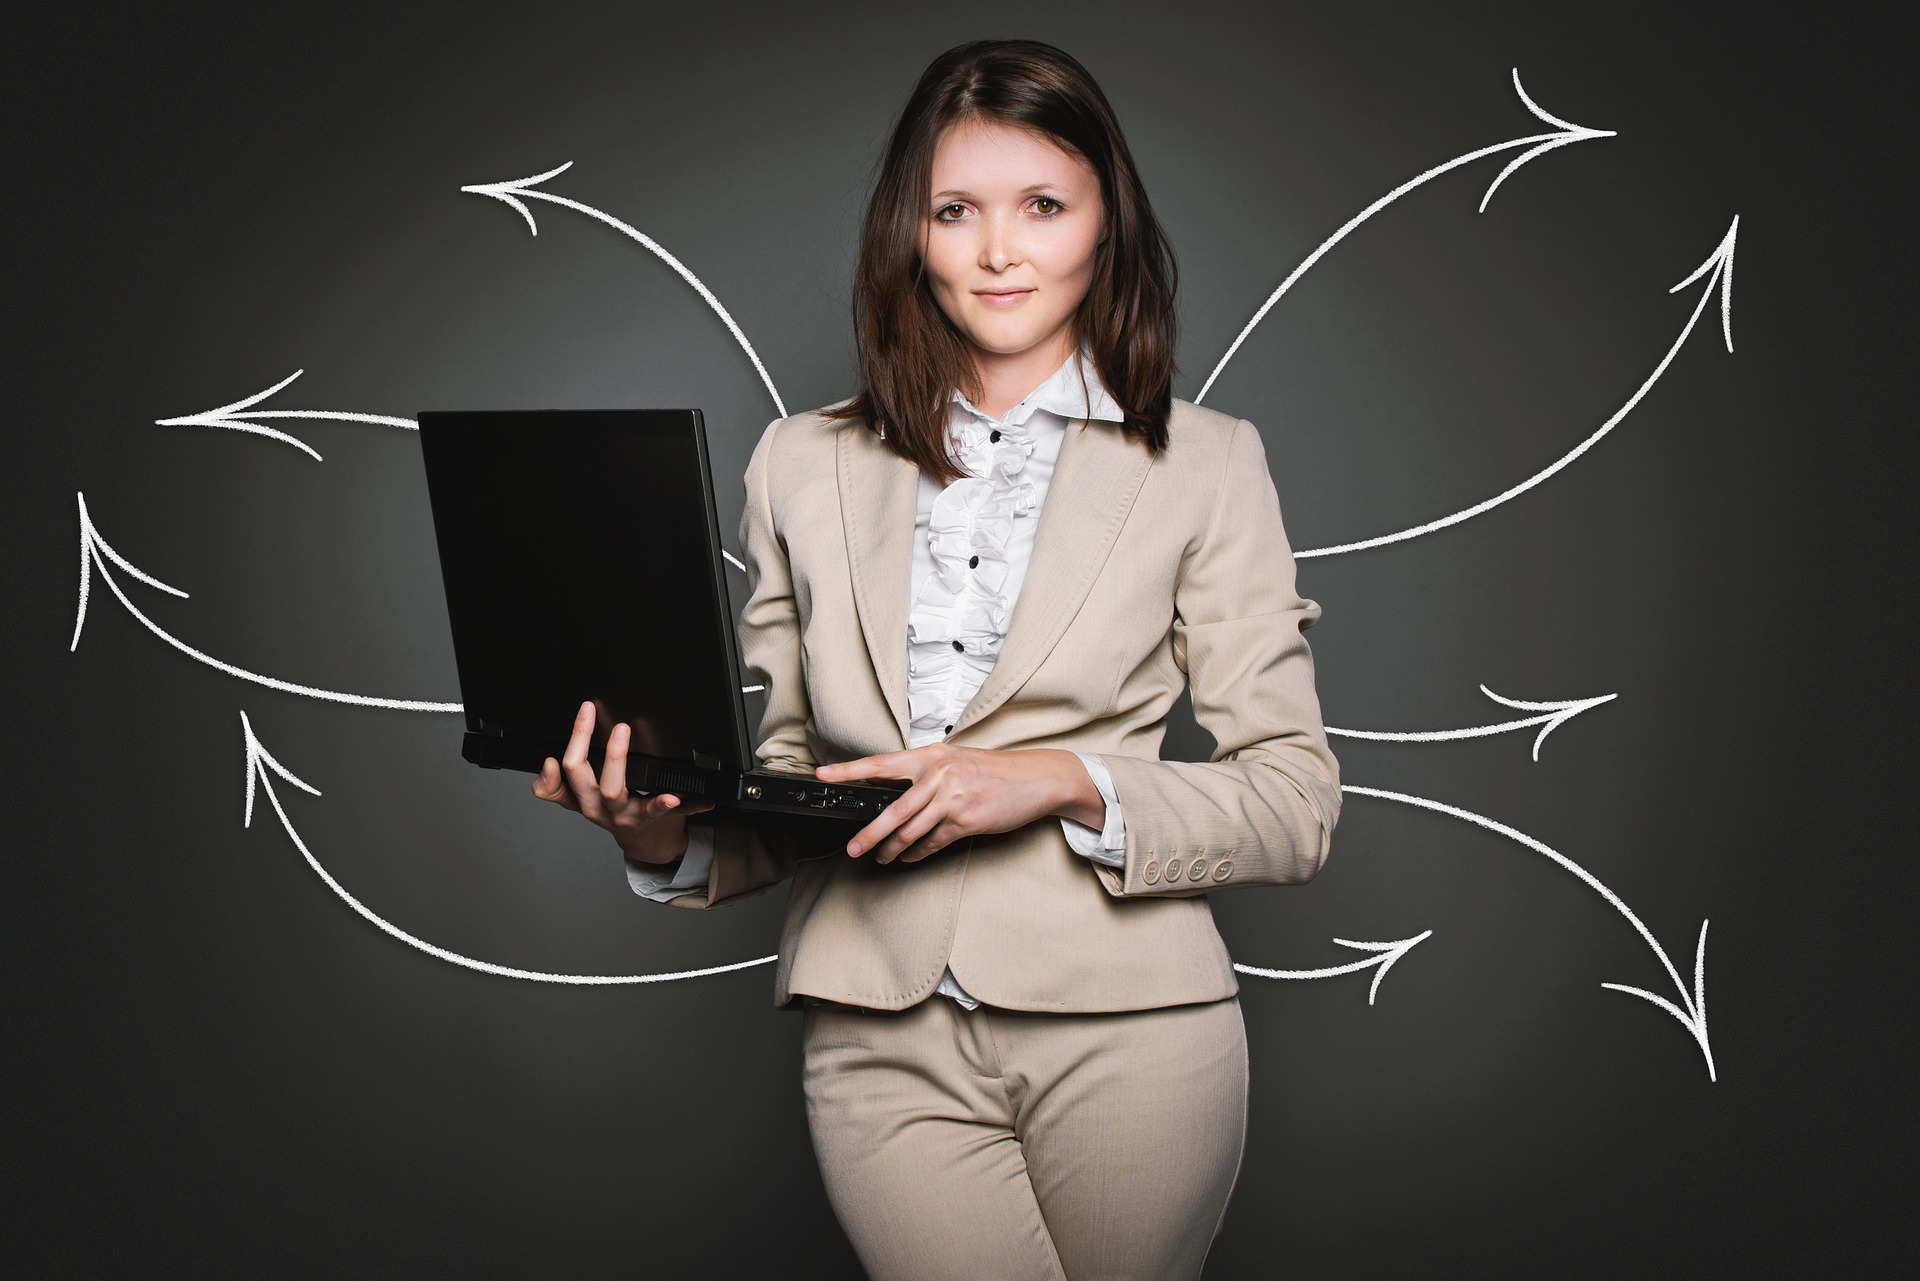 woman laptop arrows Connection: Has It Lost Its Meaning?